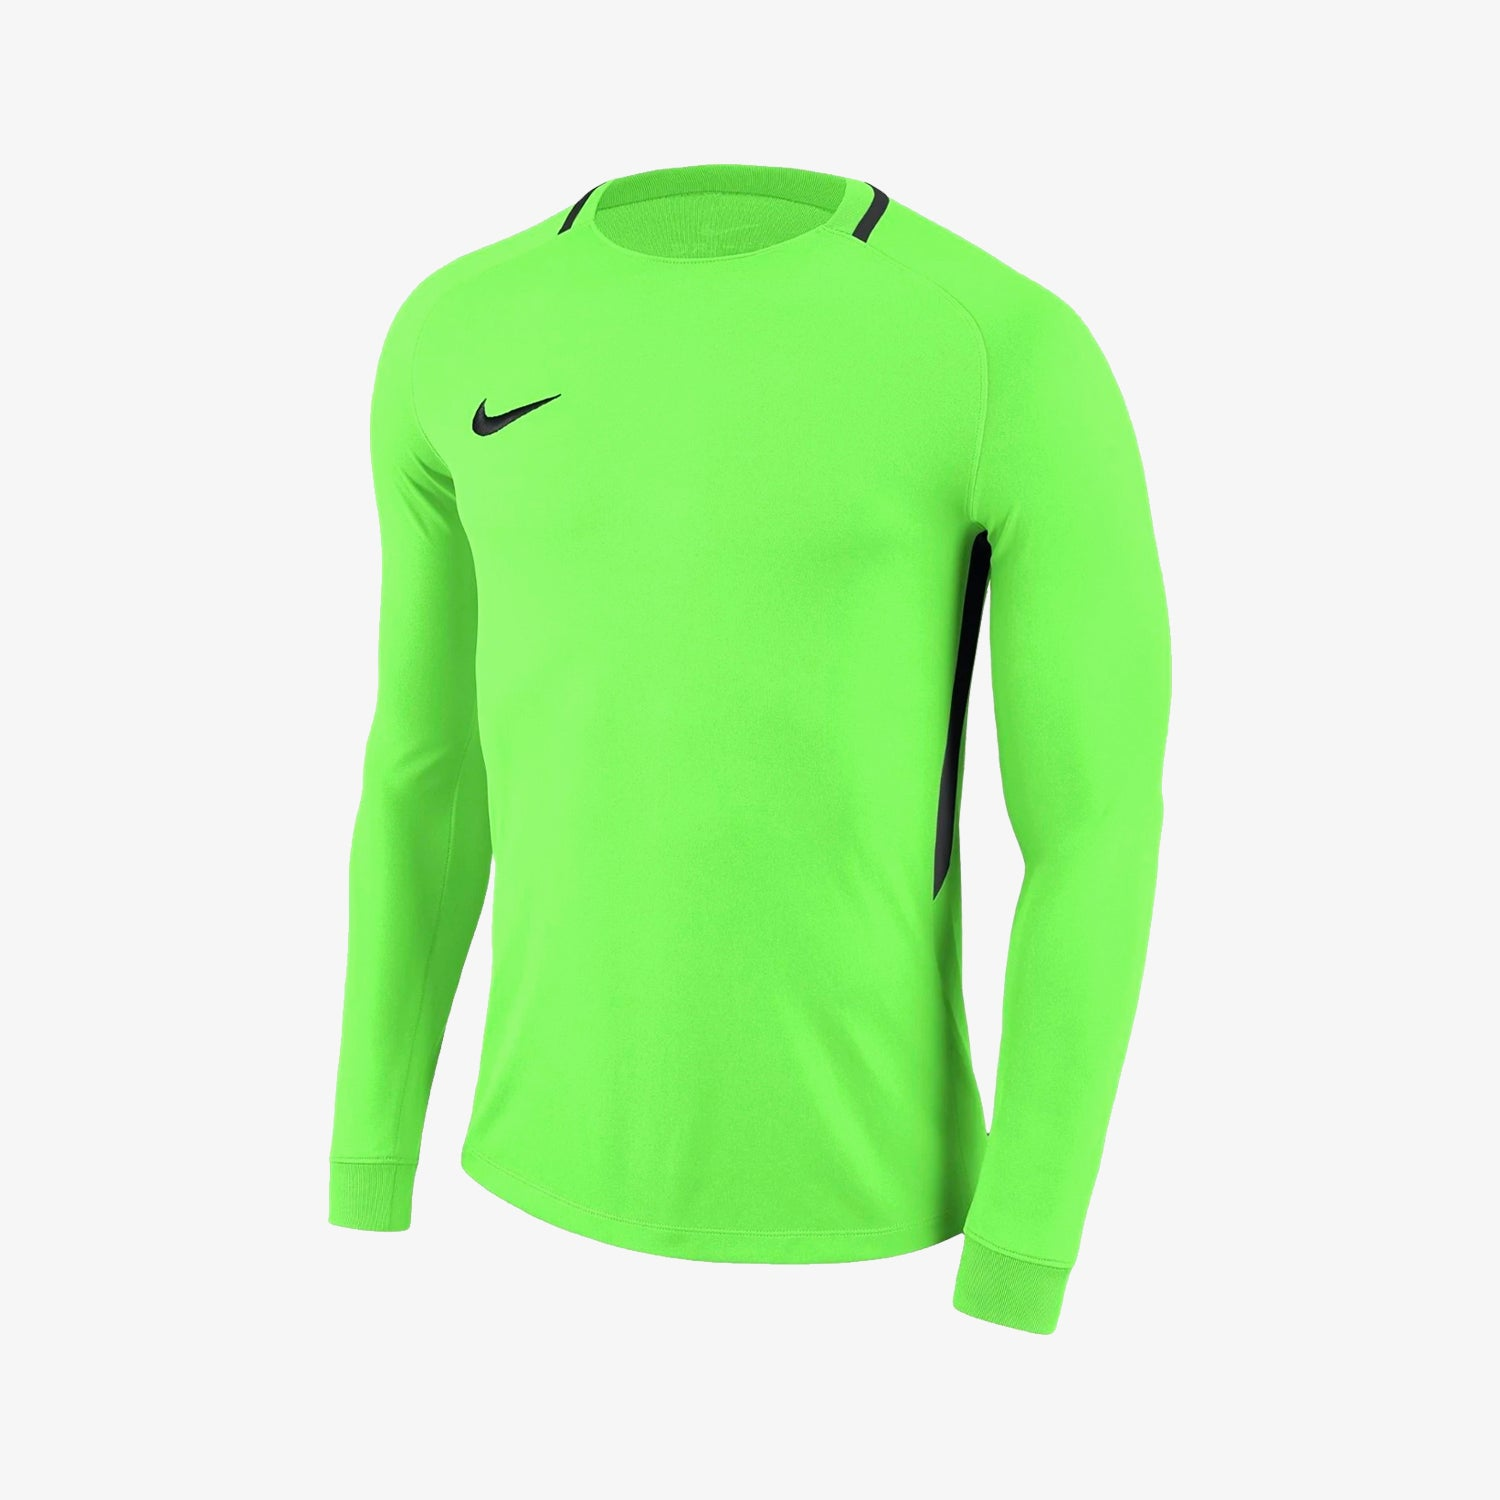 Women's Park III Goalkeeper Jersey - Green